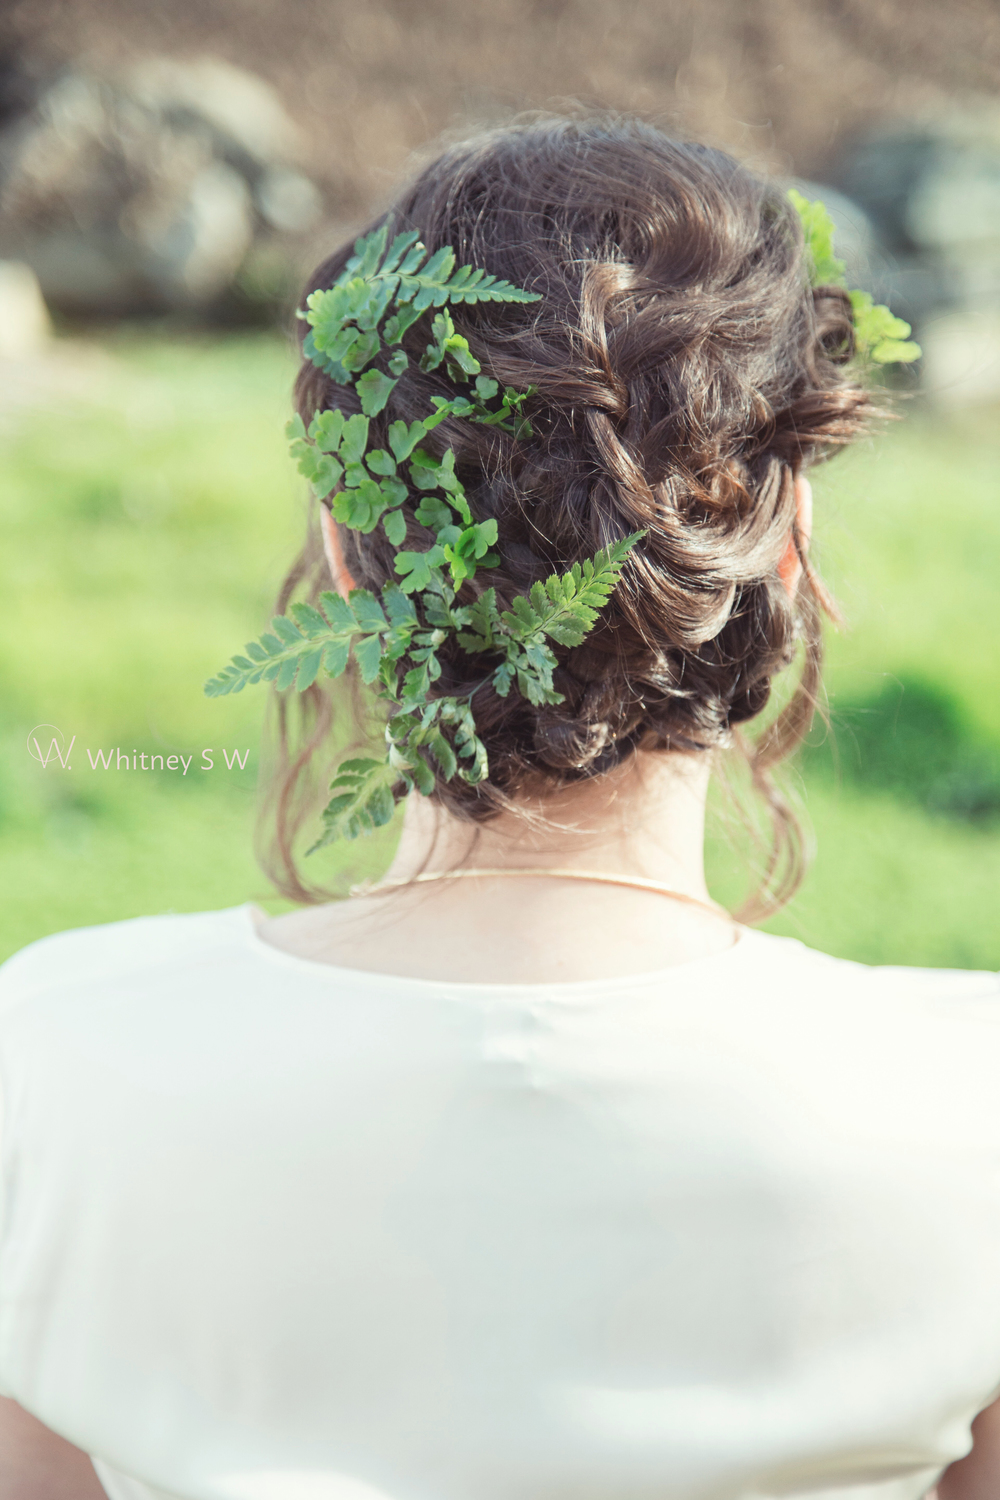 WTK_Photography by Whitney S Williams -Abby_Bridal (11).jpg